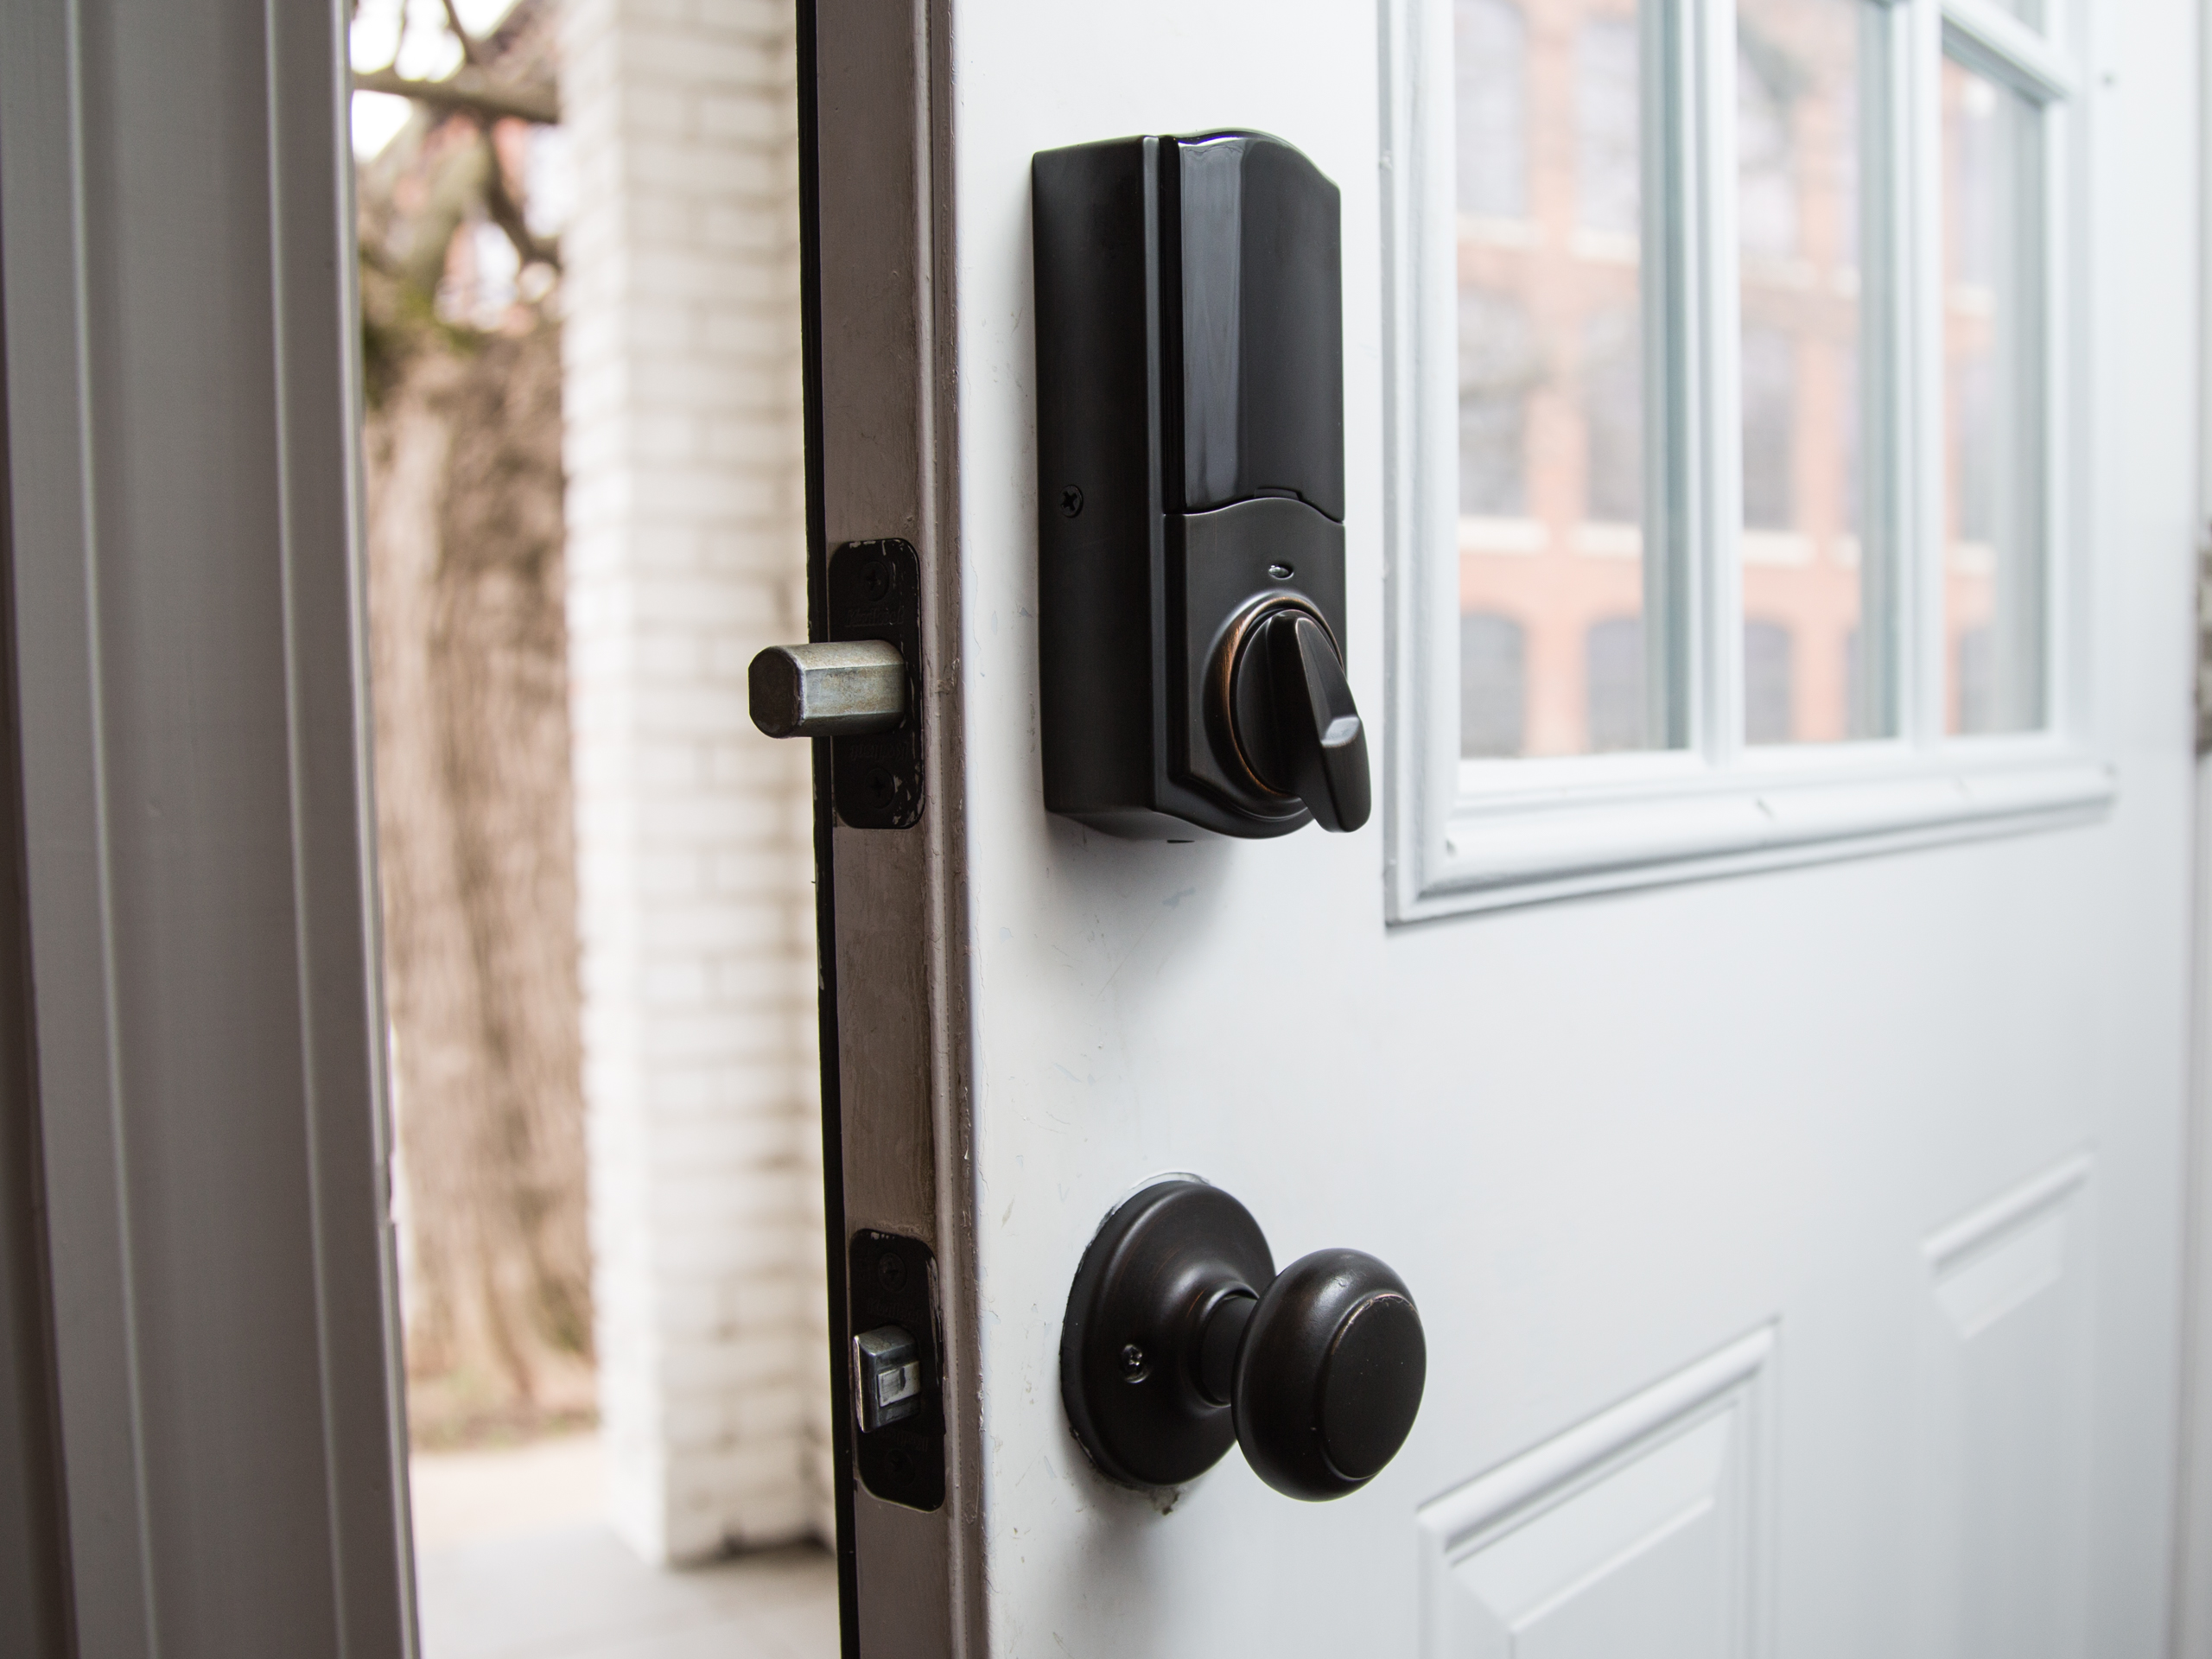 Home security checklist: 9 tips to keep your house safe from intruders -  CNET